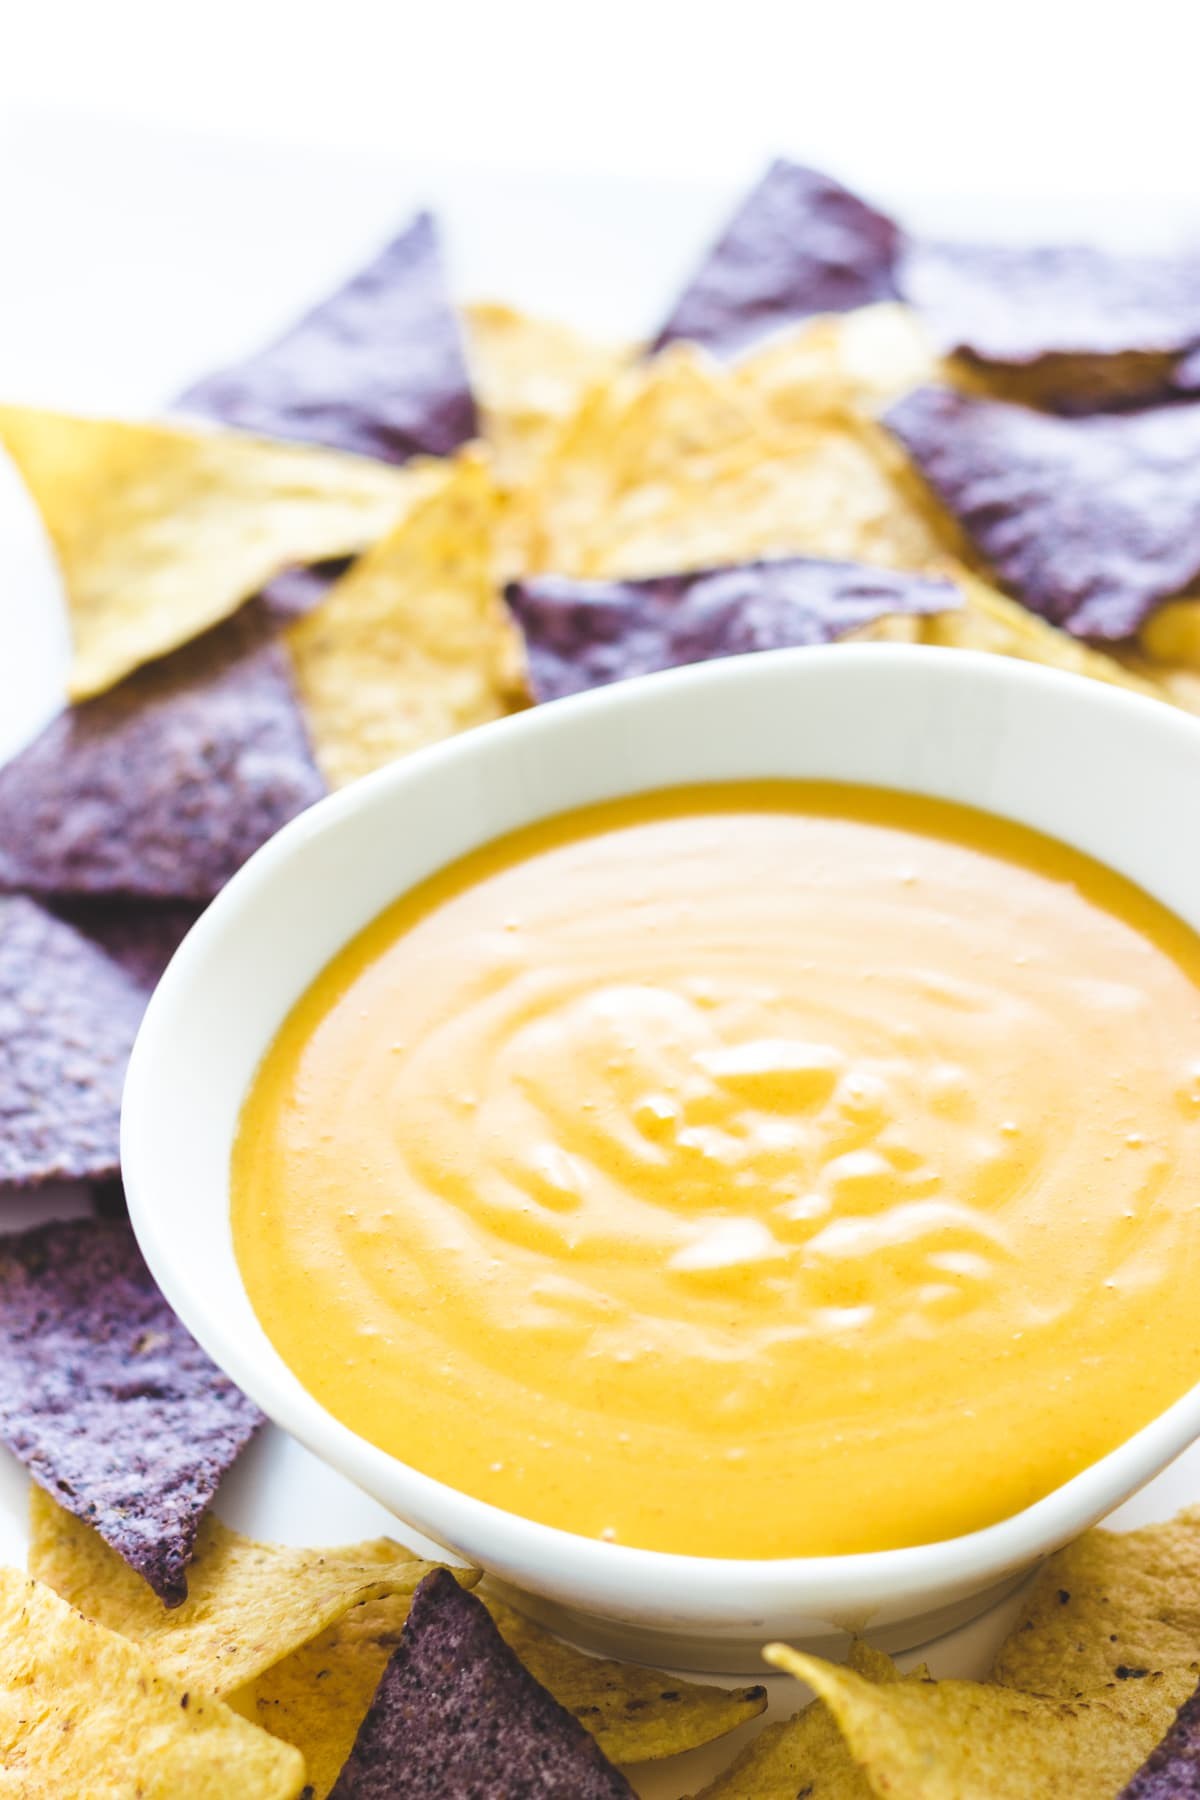 Homemade nacho cheese sauce in a white bowl surrounded by yellow and blue corn tortilla chips